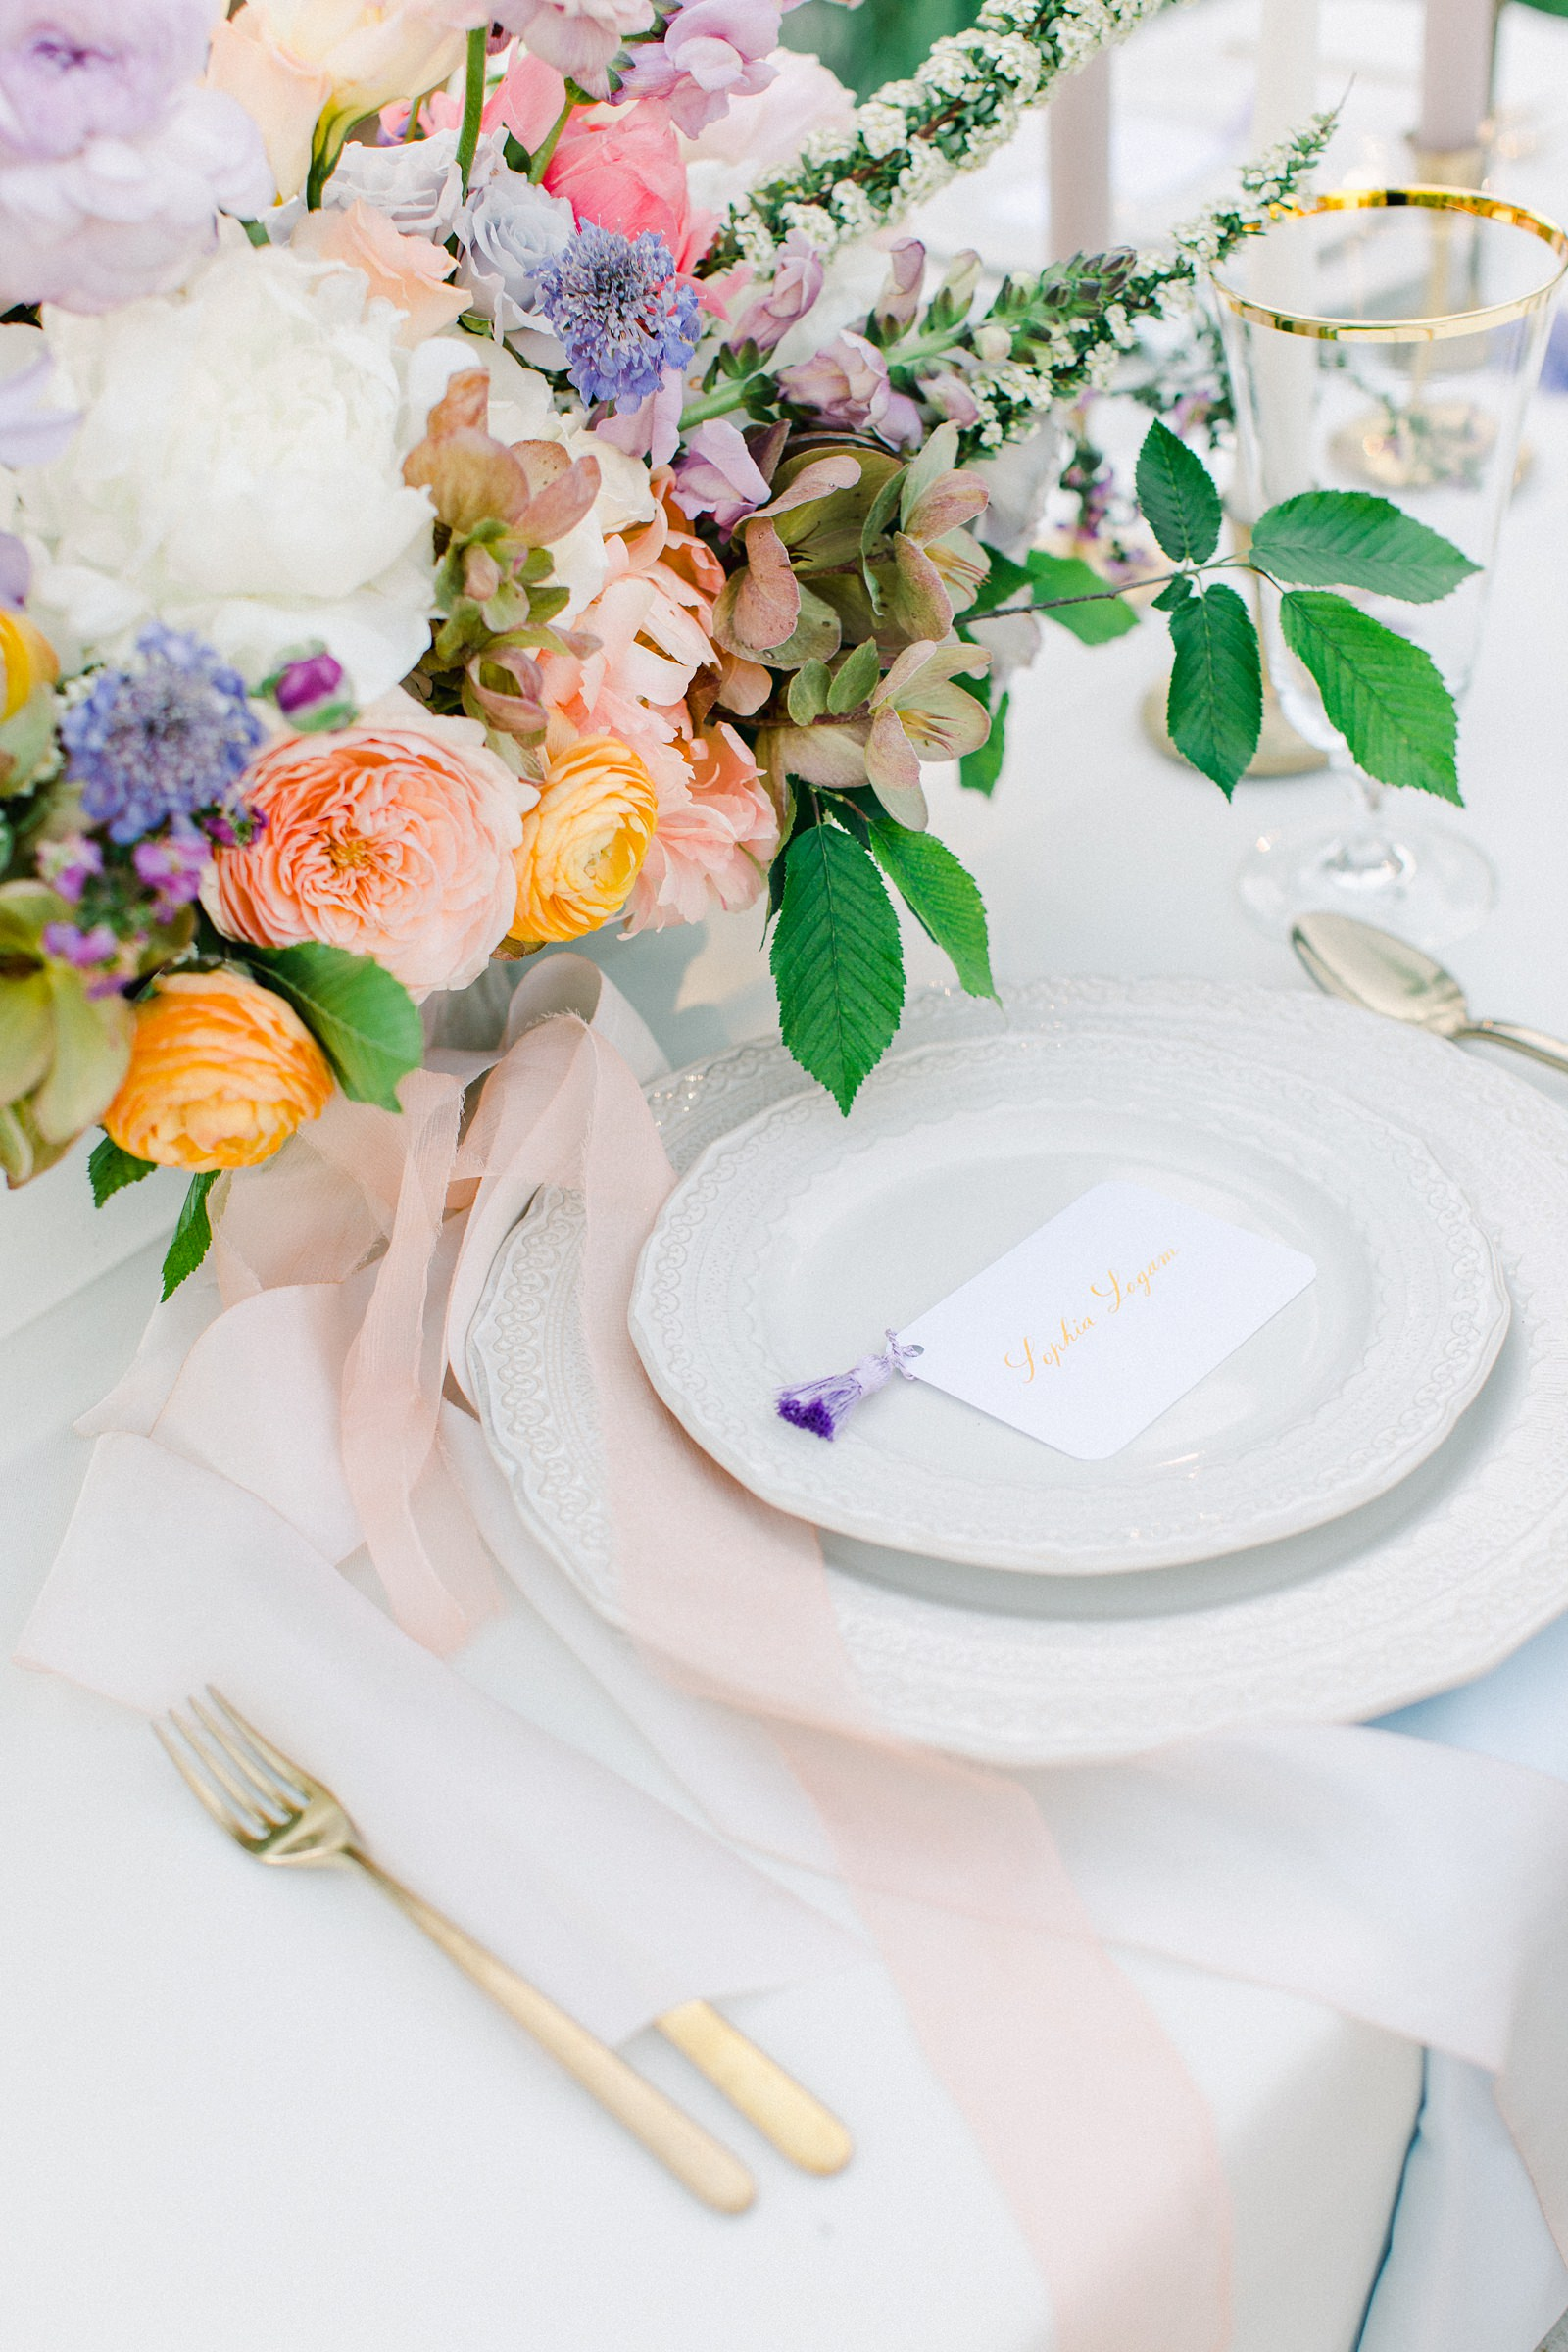 Outdoor Spring Secret Garden Wedding, Provo Utah Film Wedding Photography, colorful floral centerpiece wedding flowers simple white tablescape, place setting calligraphy place card